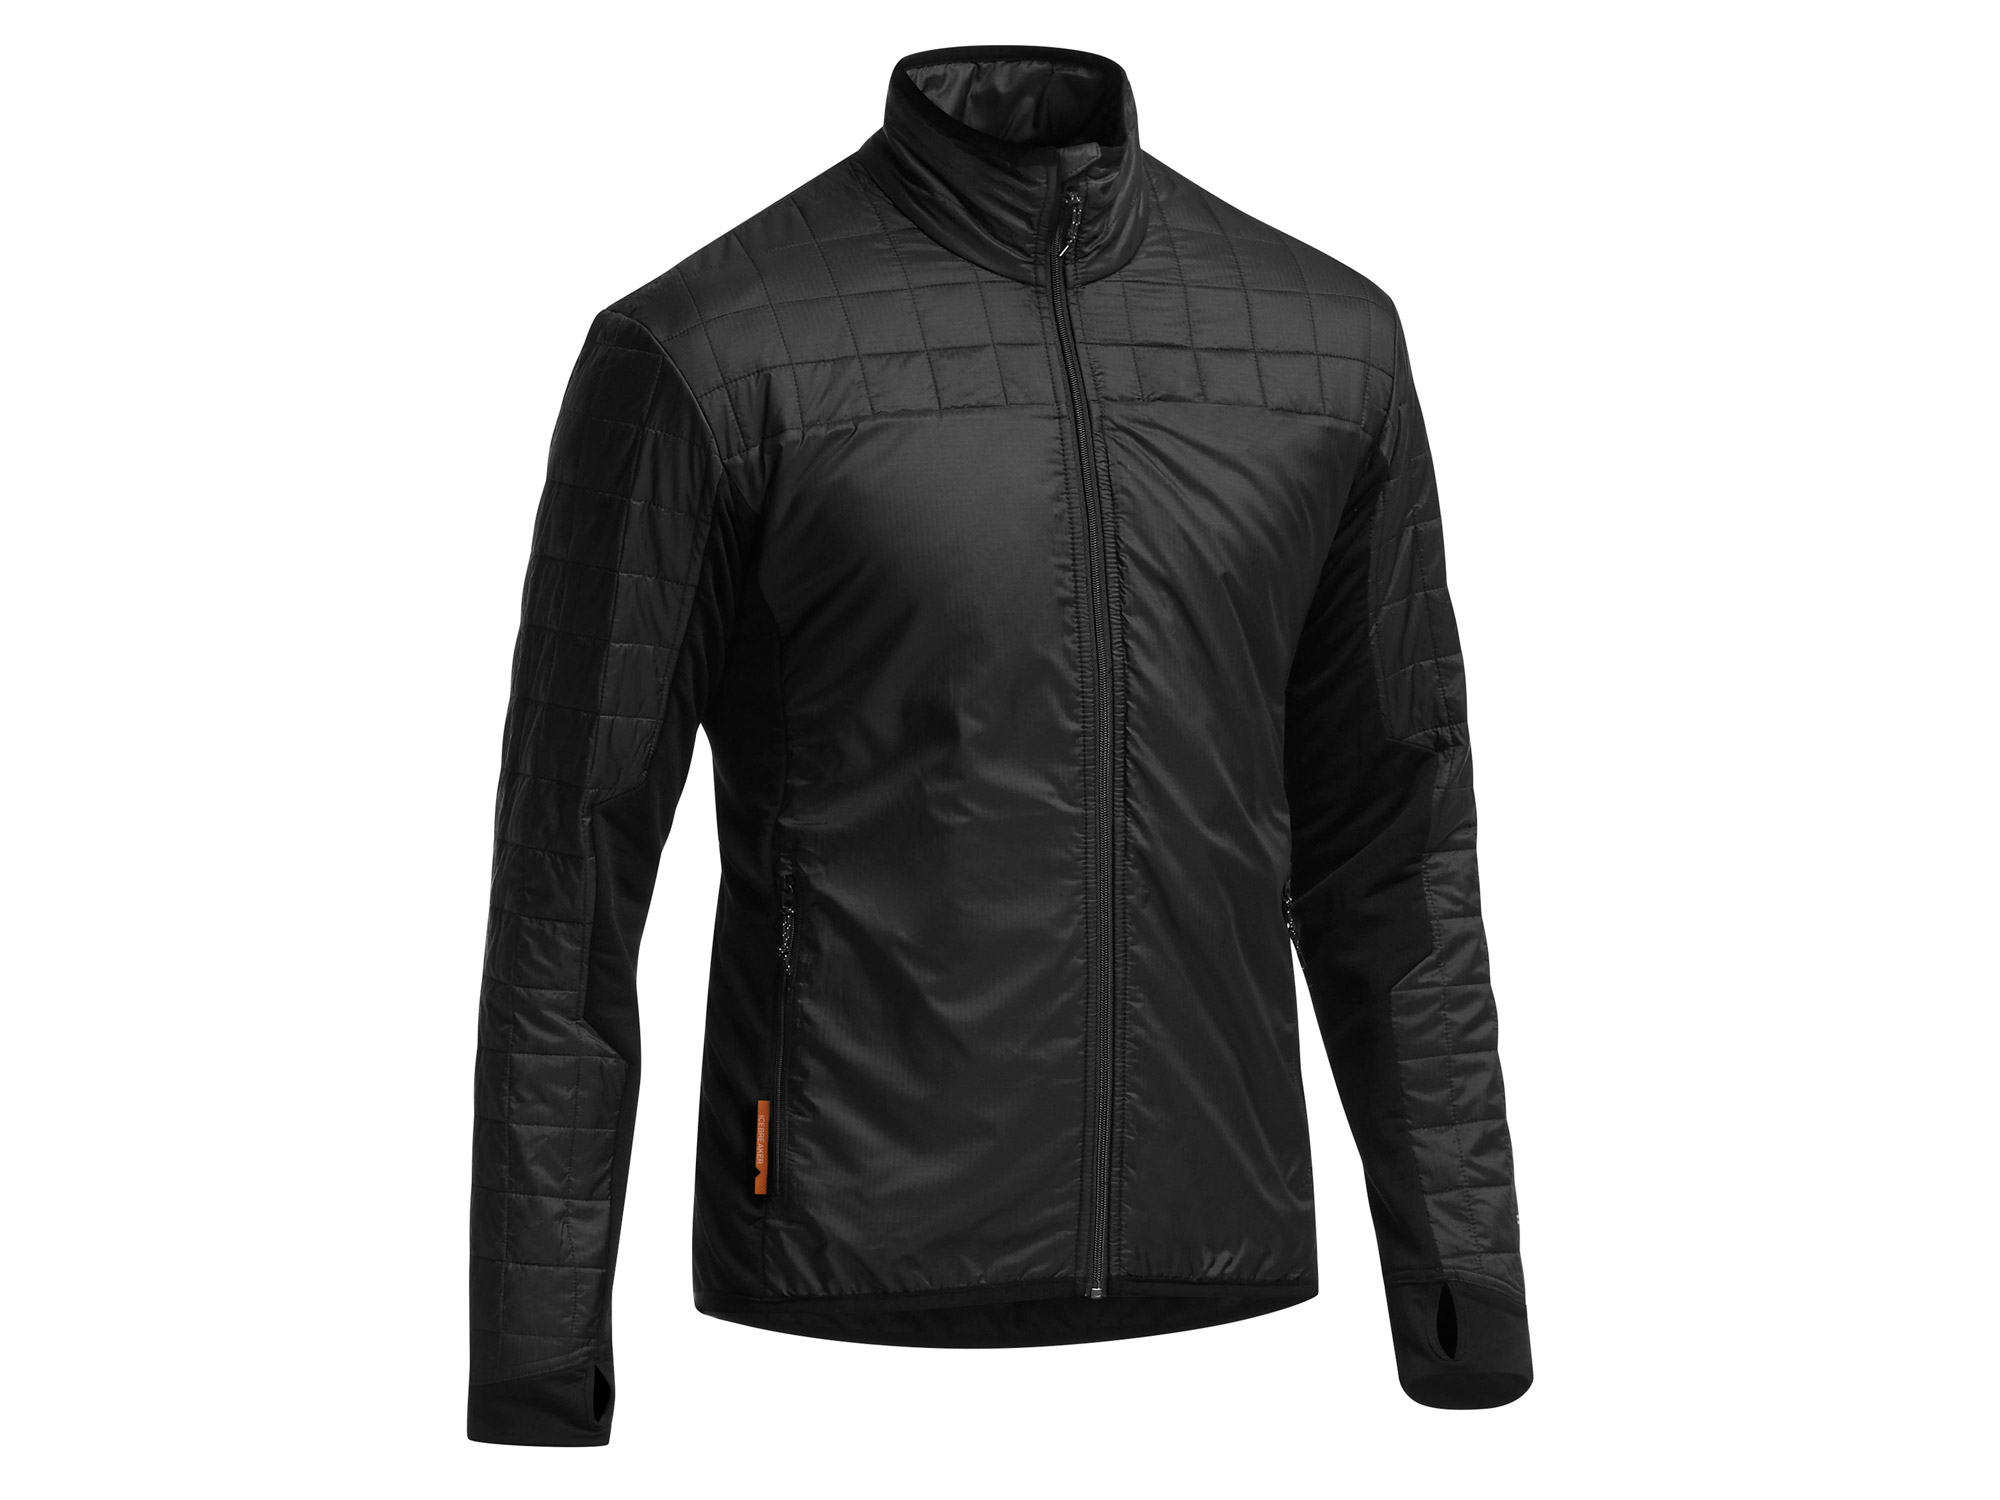 Icebreaker - Helix LS Zip Black/Black/Black - Isolation & Winter Jackets - M